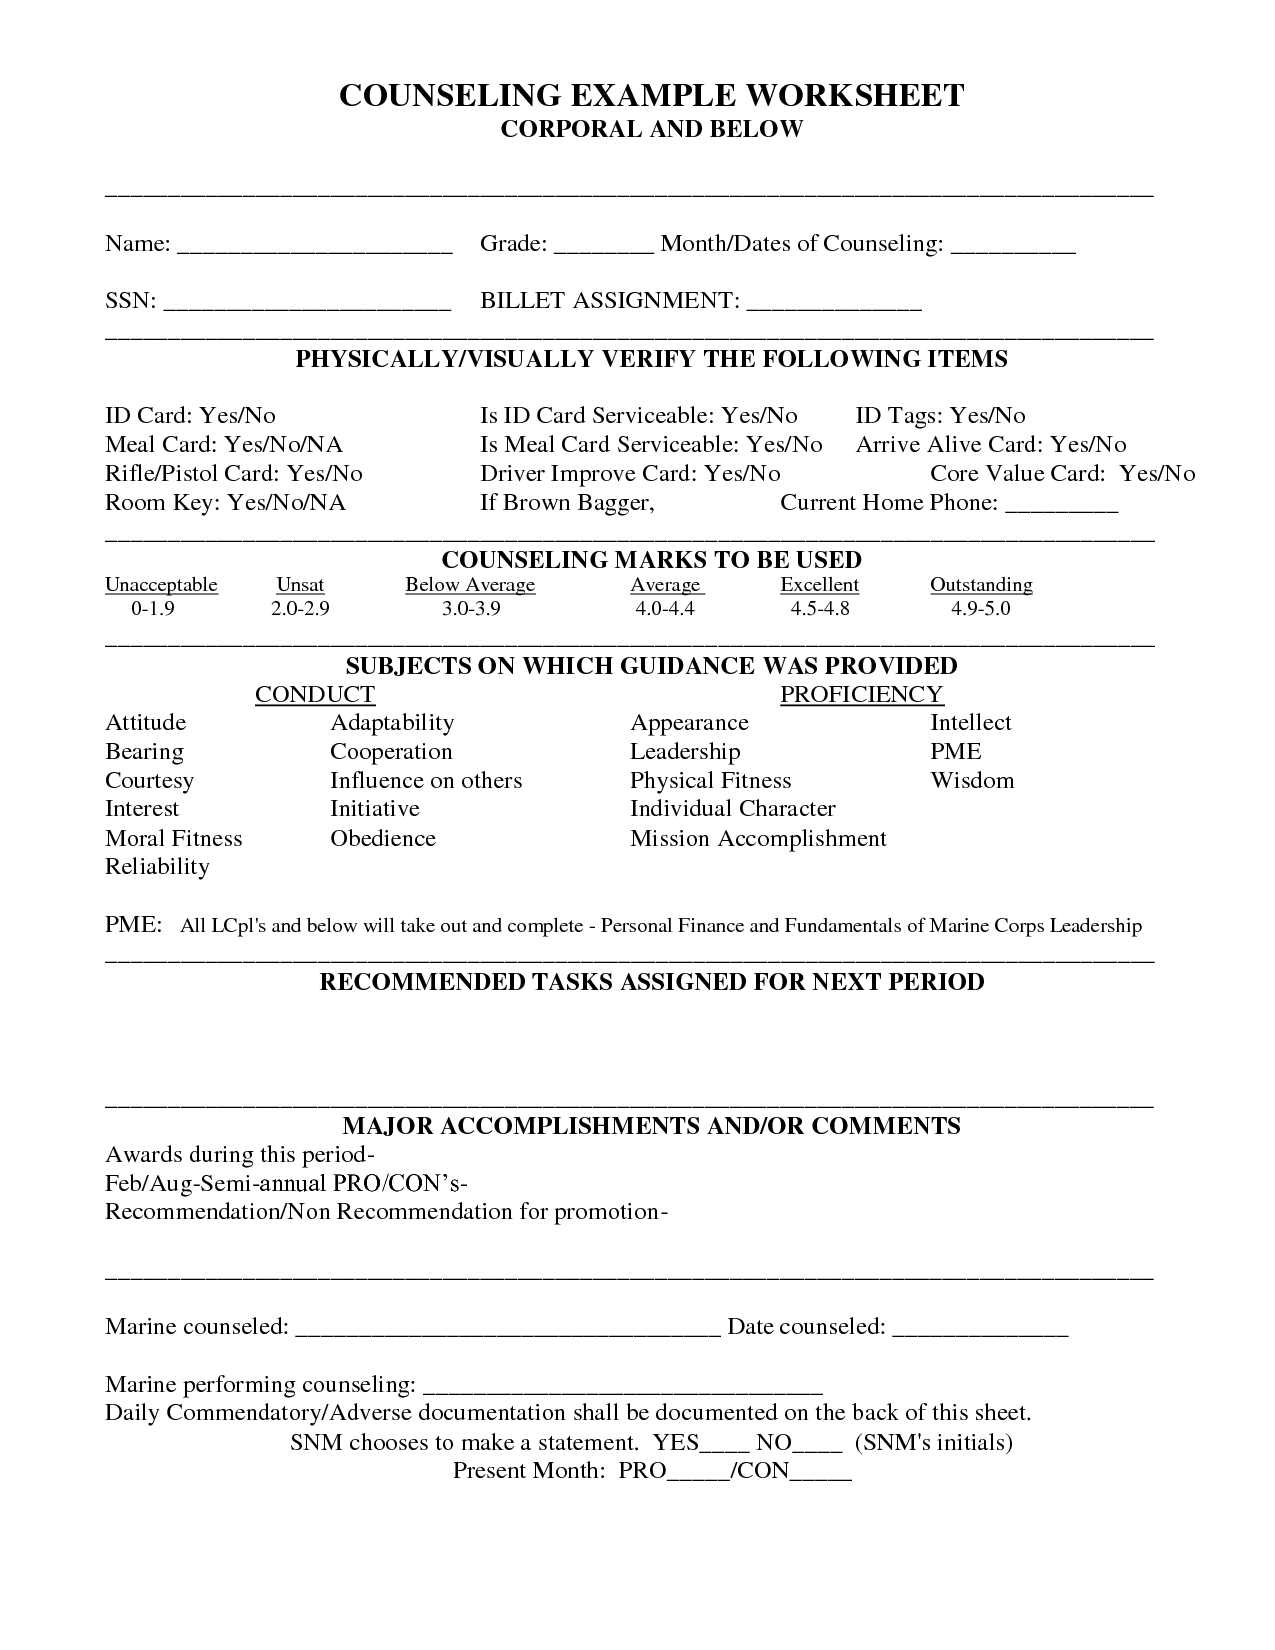 Free Worksheet Marine Counseling Worksheet marine corps resume help erin swanson counseling sheet via